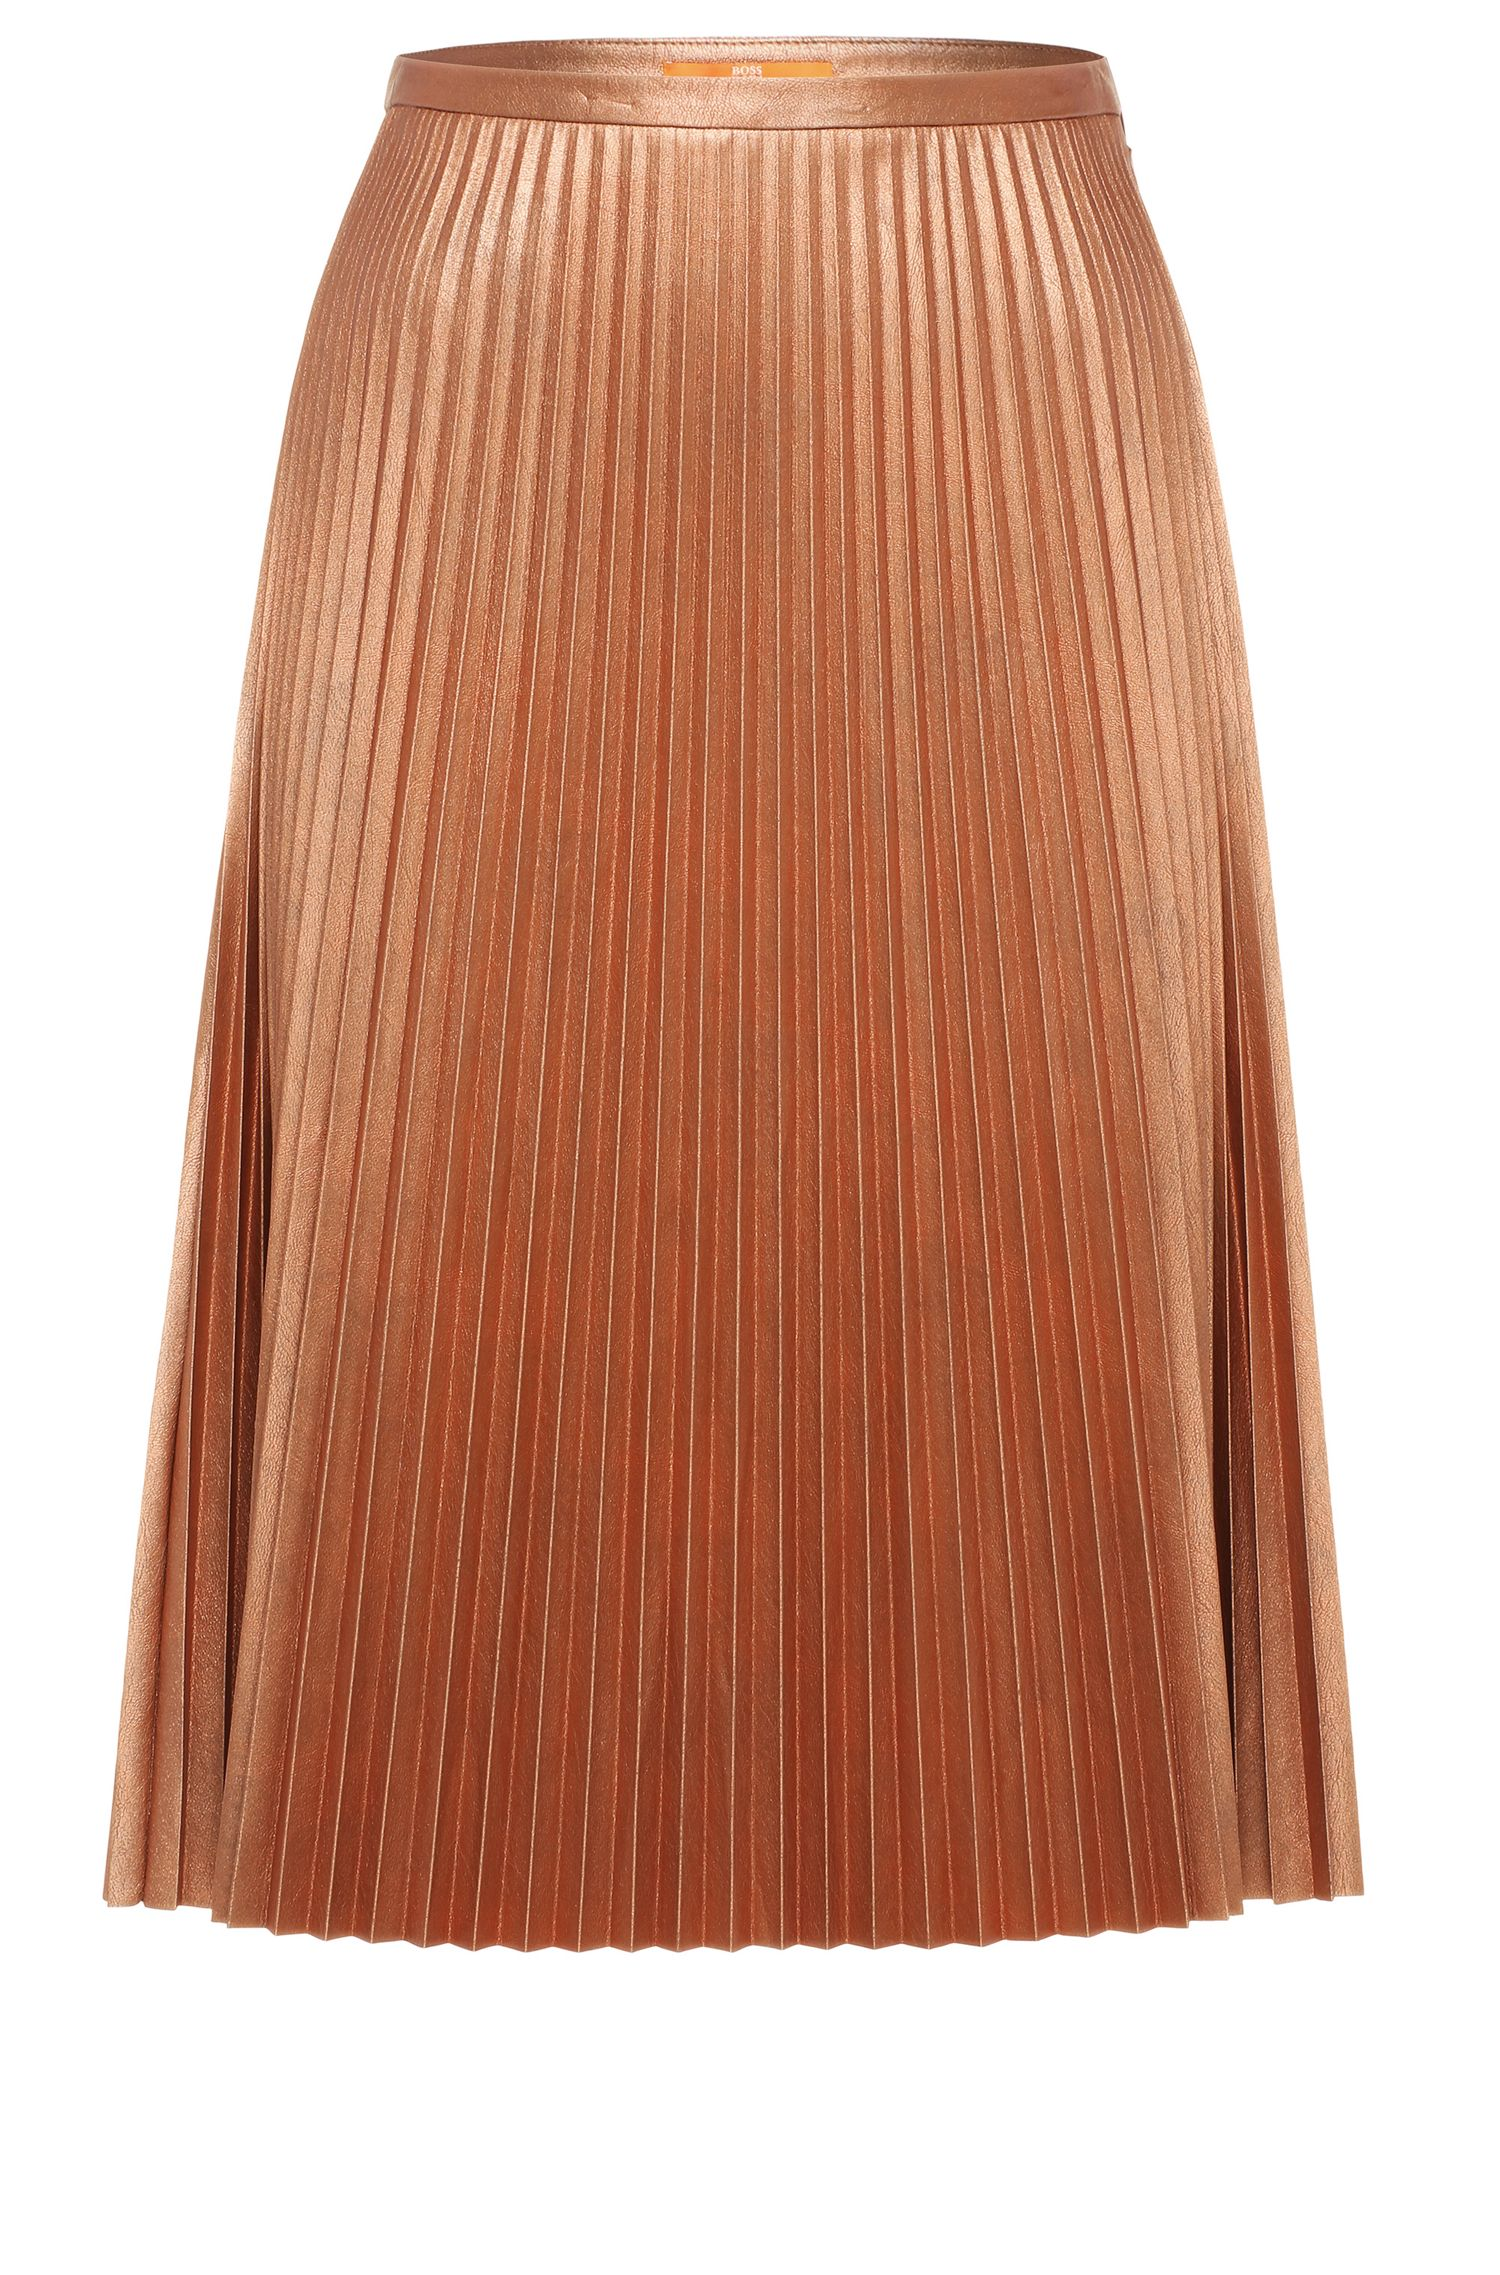 Pleated skirt in fabric blend with metallic effect: 'Baledina'